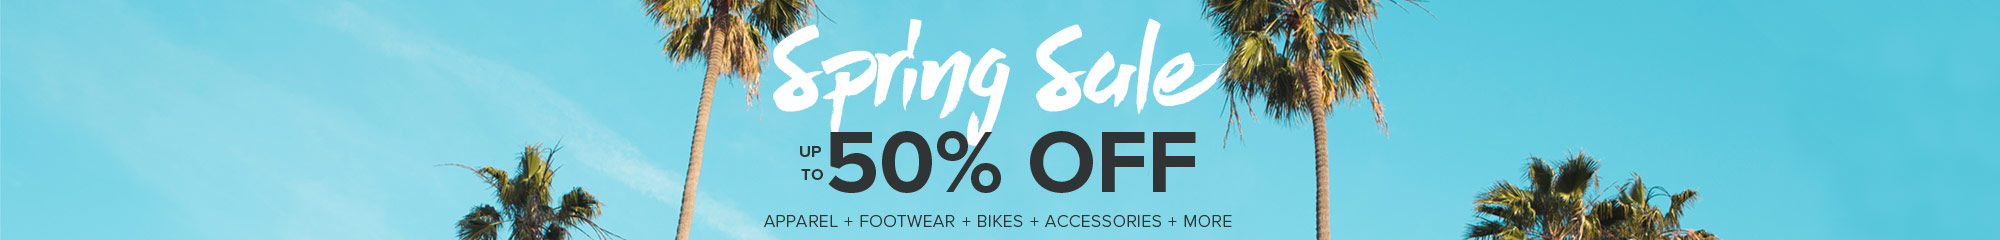 Spring Sale - Up To 50% Off Apparel, Footwear, Bikes, Accessories and more.